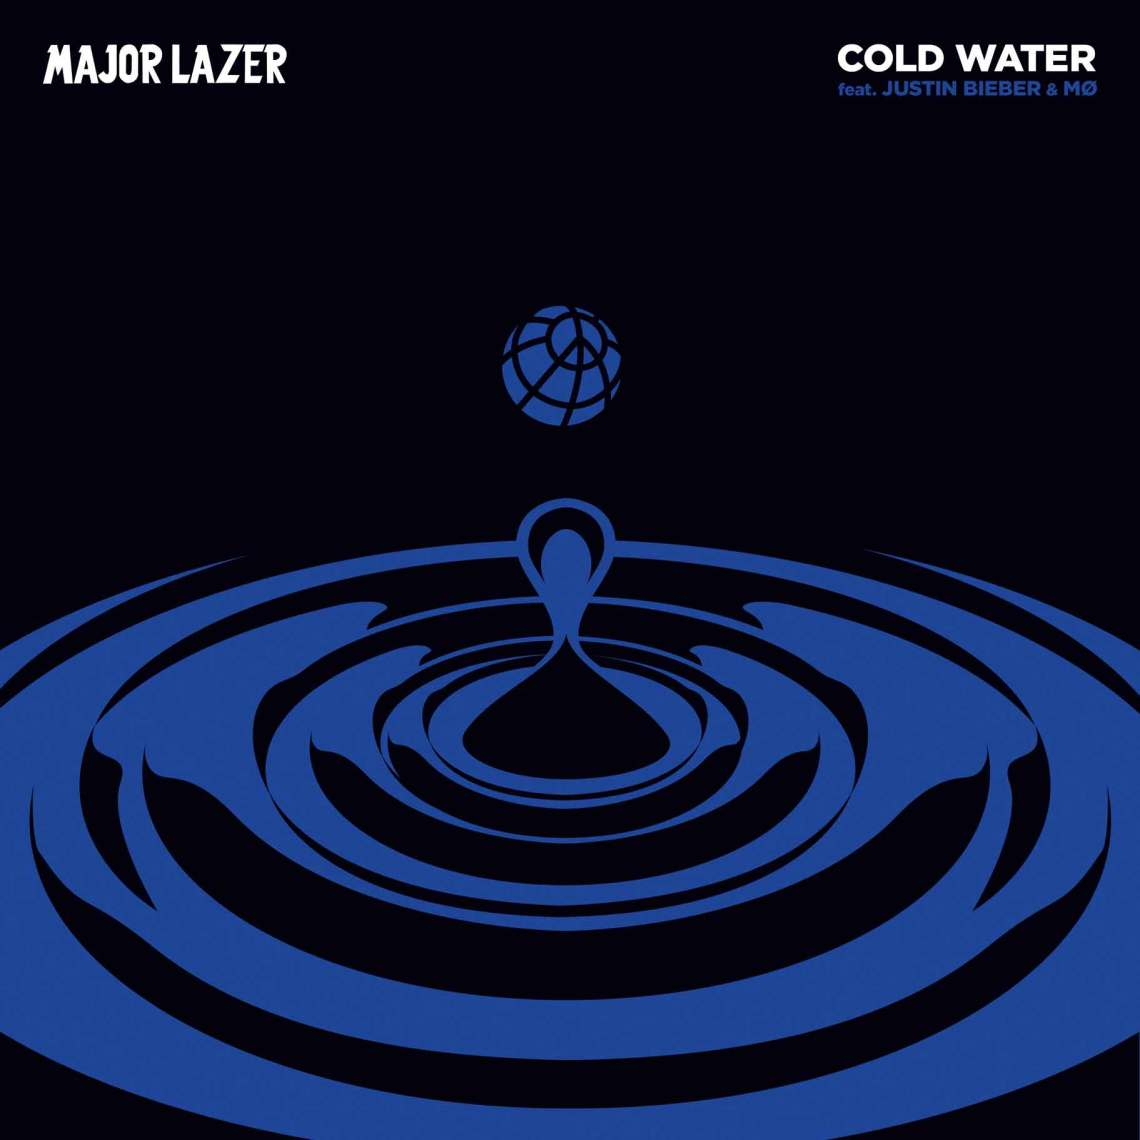 major-lazer-justin-bieber-mo-cold-water